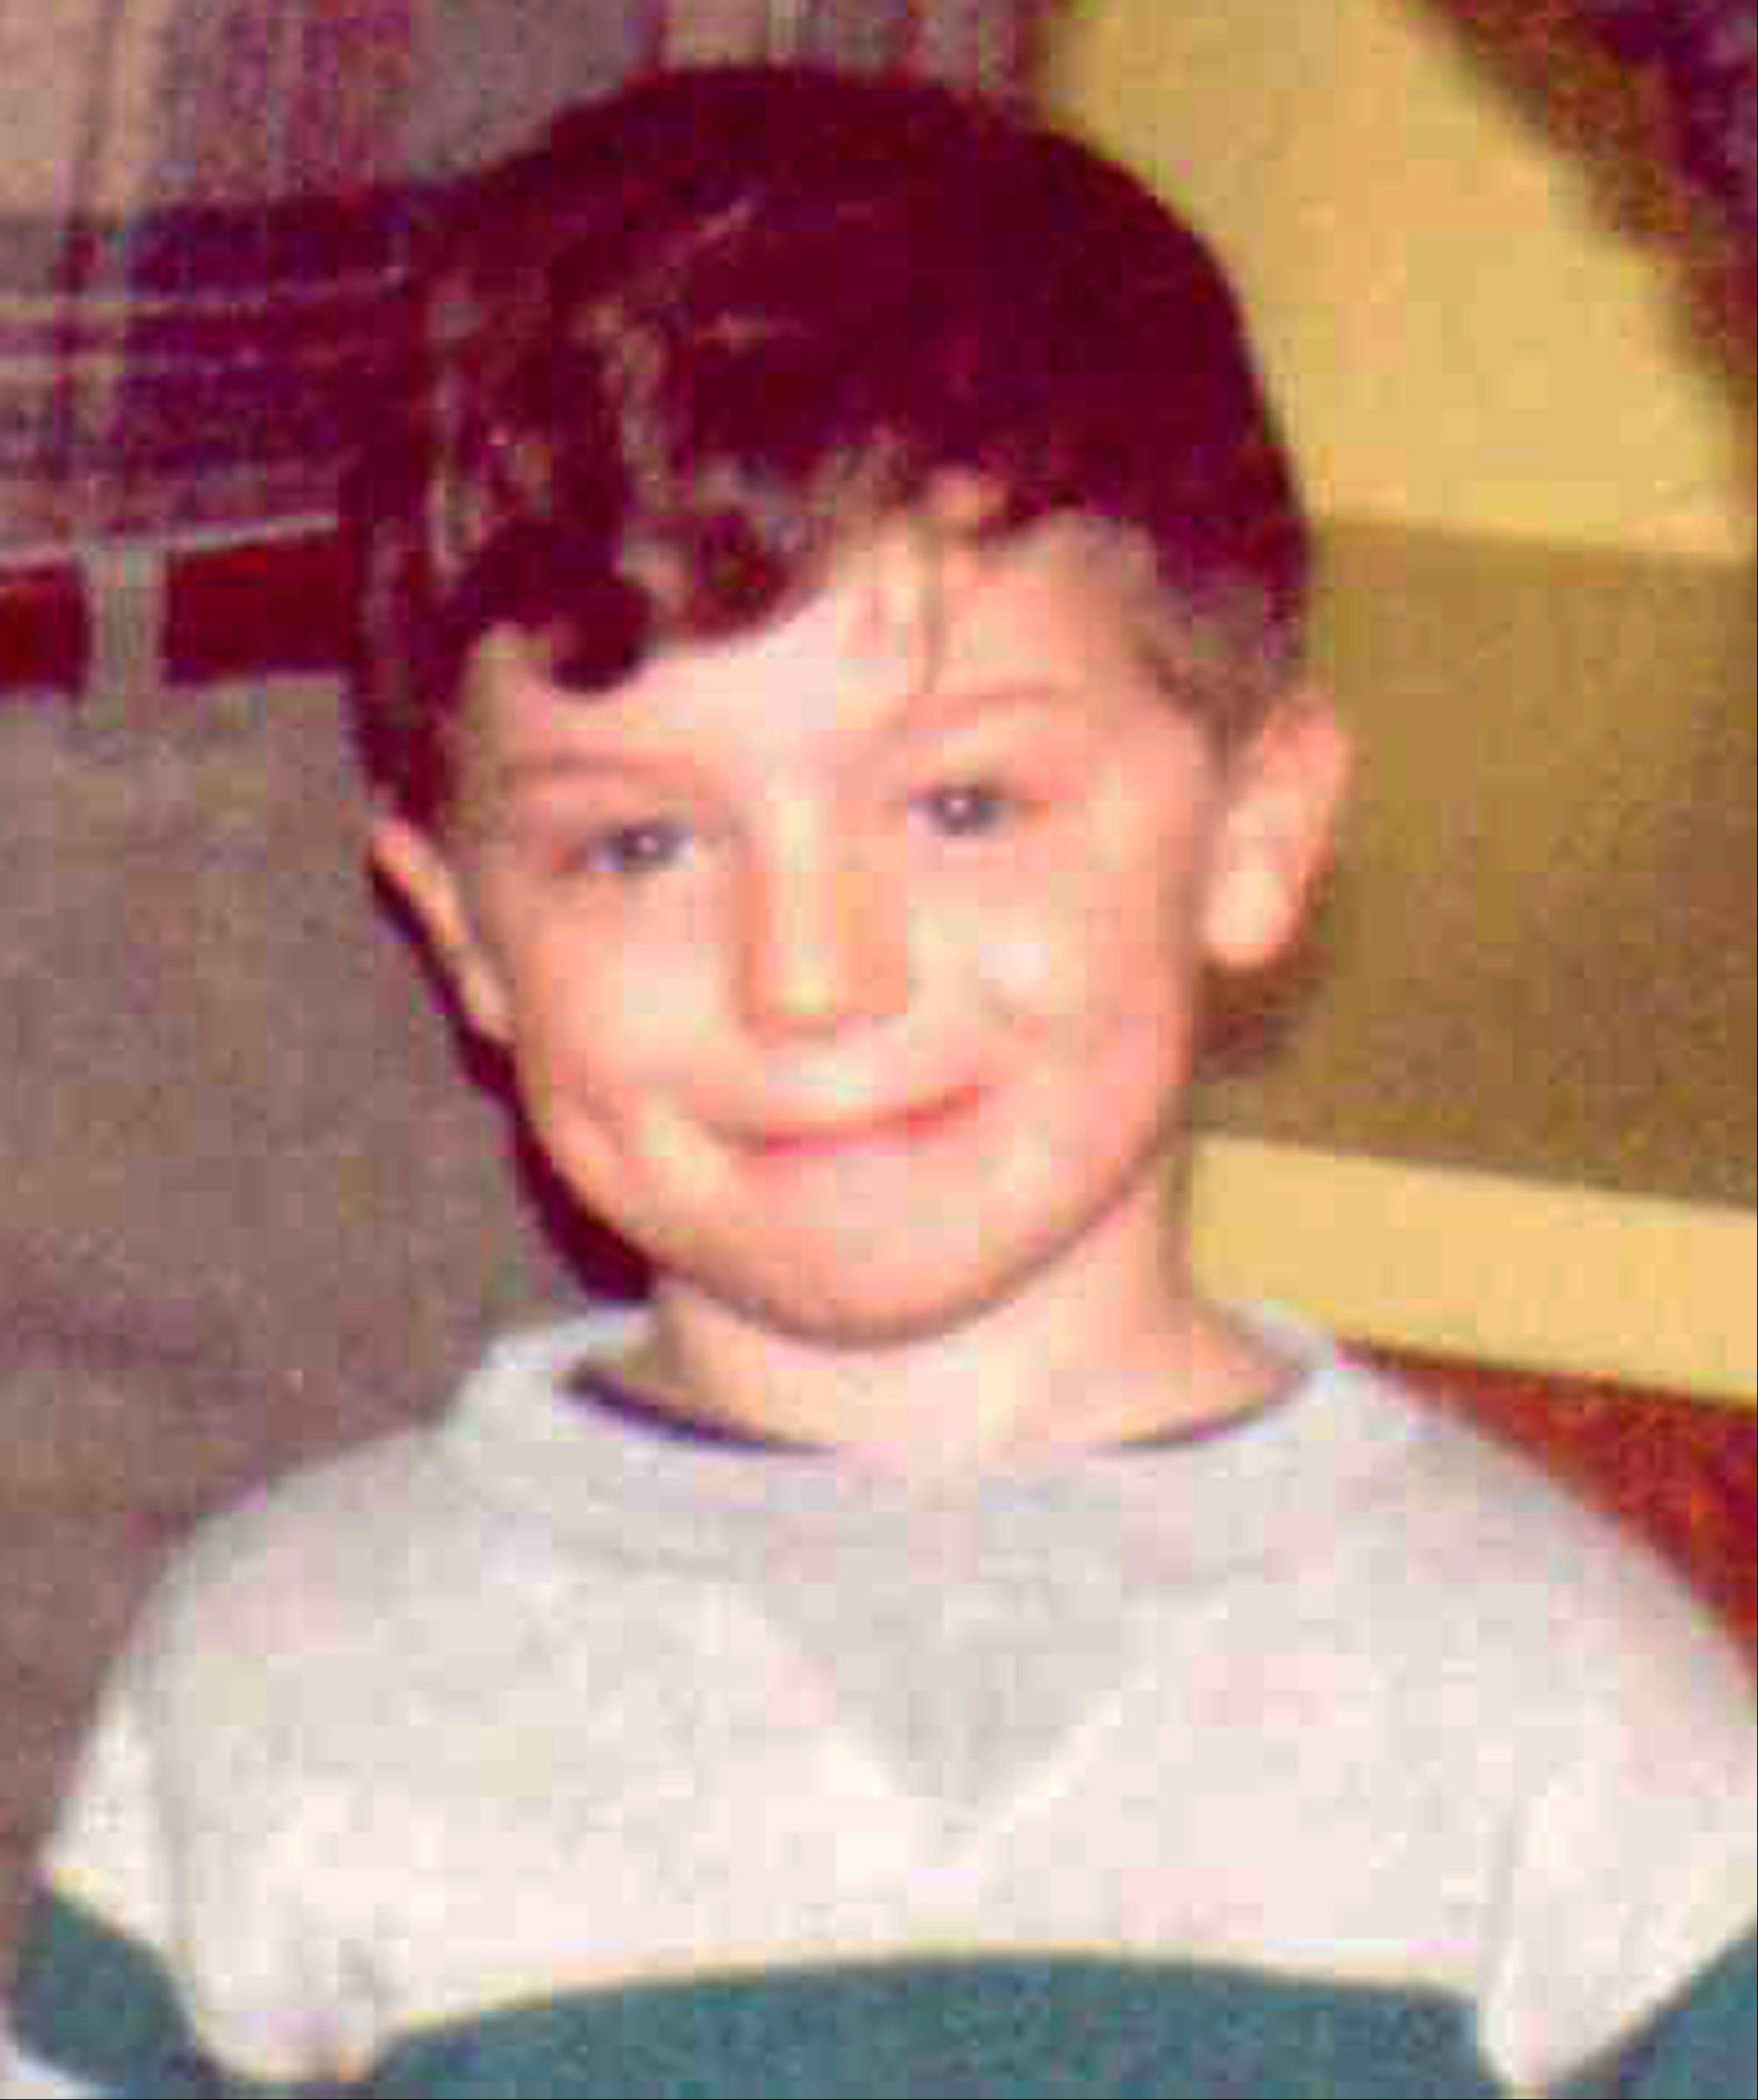 This photo provided by the Indiana State Police shows Richard Wayne Landers, Jr. who authorities say was abducted from Indiana by his paternal grandparents in 1994 during custody proceedings. Authorities say a 24-year-old man with the same Social Security number and date of birth as Landers but living under a different name was located in October 2012 in Long Prairie, Minn. Police said his grandparents were also living under aliases nearby and confirmed his identity.